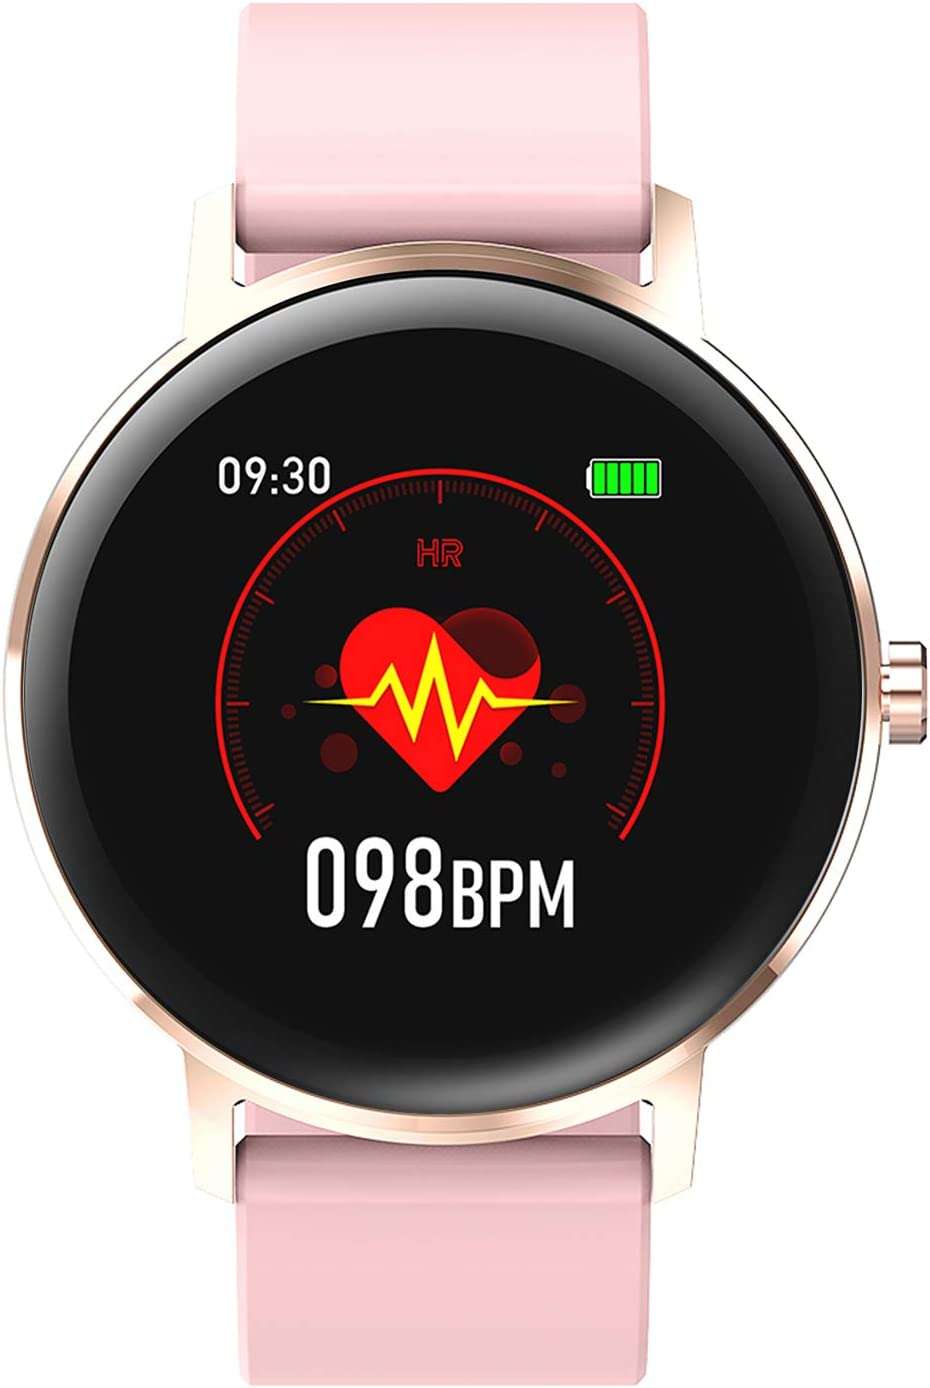 """HAOQIN HaoWatch QS2 1.22"""" Full Touch Screen Smart Watch Fitness Tracker with Heart Rate Monitor IP67 Waterproof Pedometer Smartwatch with Sleep Monitor Bluetooth 4.0 Pink"""